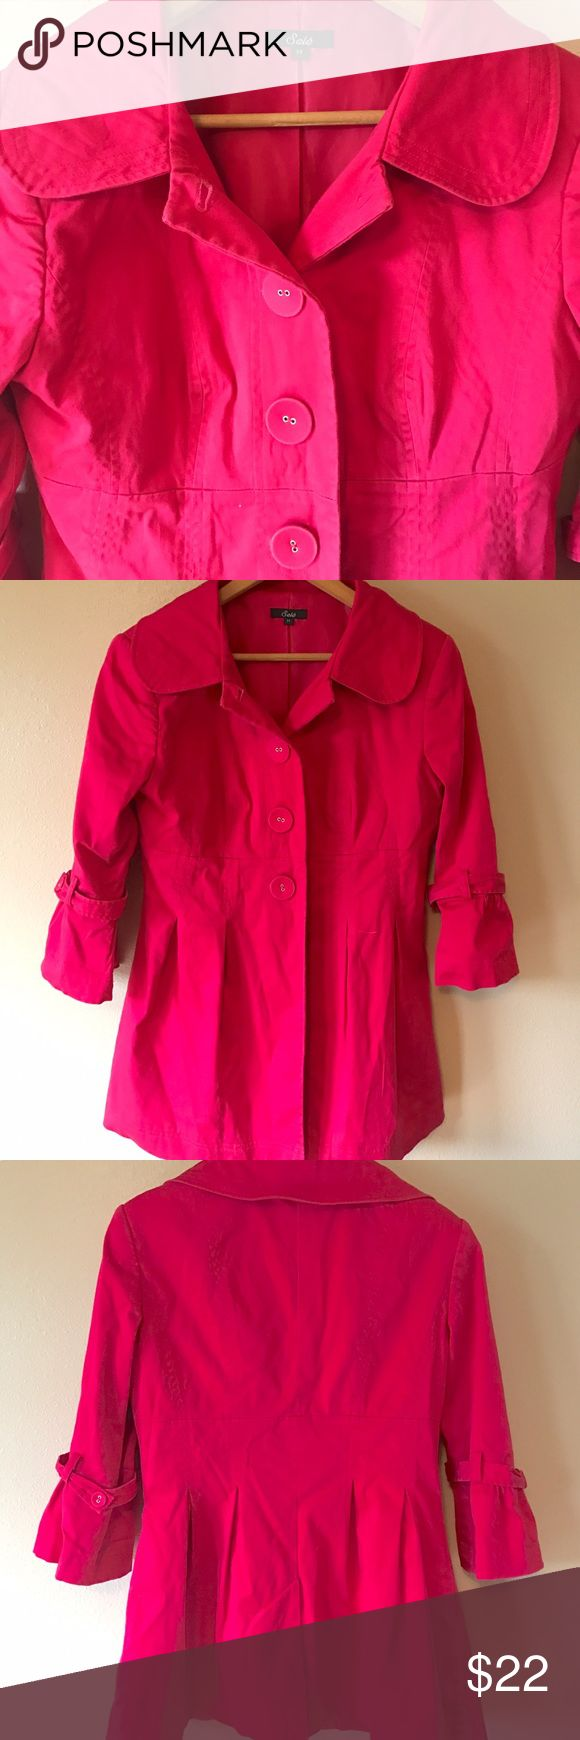 Lightweight Trench Coat Hot pink trench coat. Great condition, lightweight and comfortable material. I hate to see it go but it's just not the right fit for me. 🛍 Sele Jackets & Coats Trench Coats